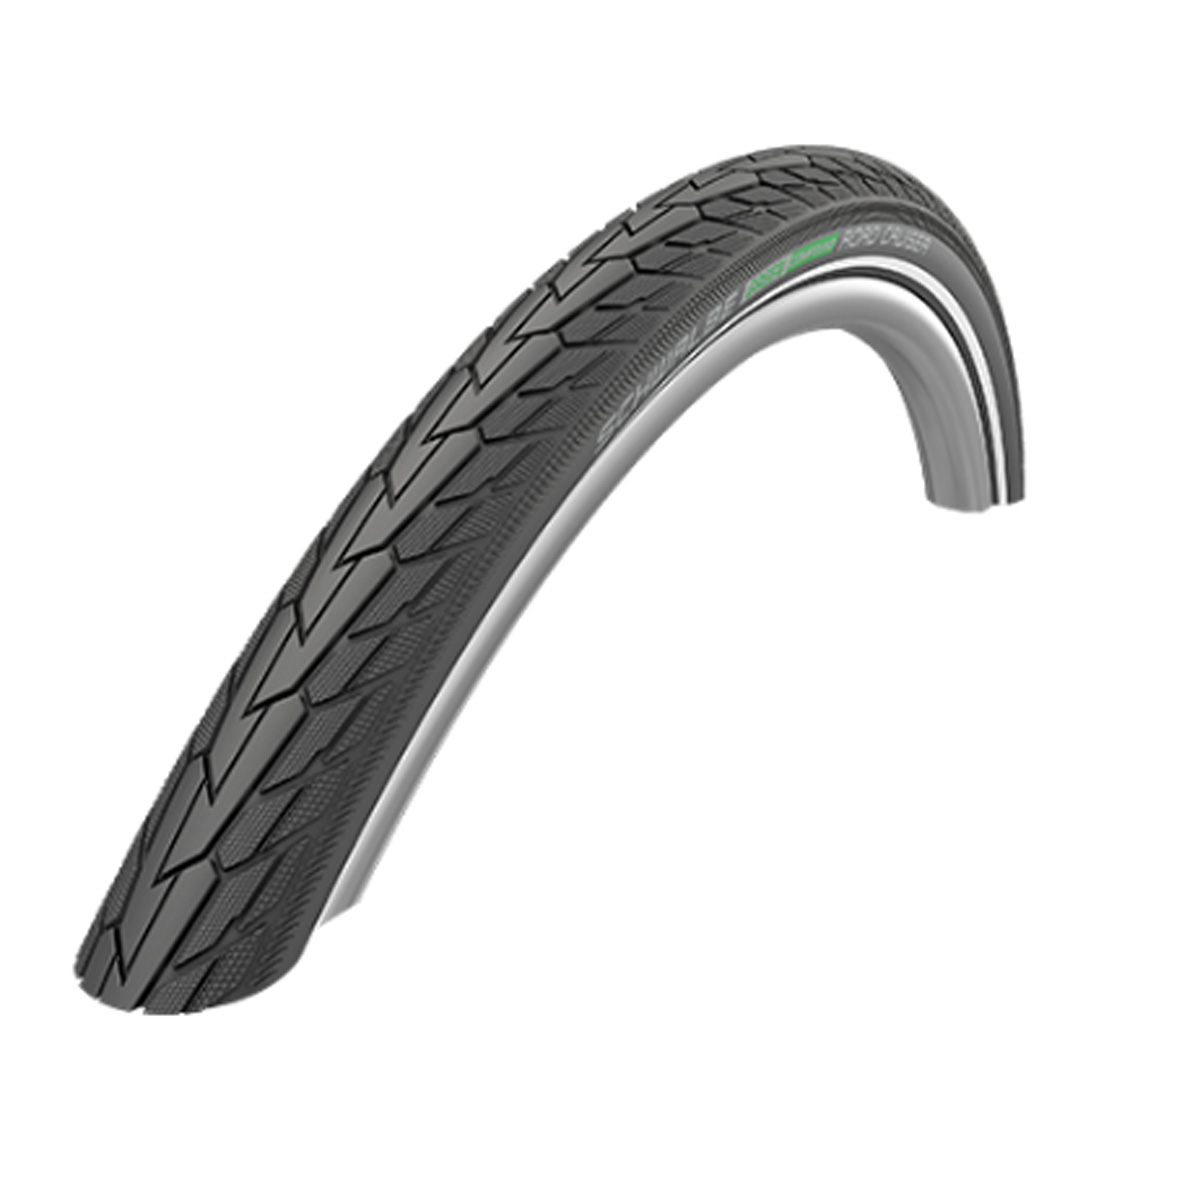 Schwalbe Road Cruiser HS 484 Mountain Bicycle Tire - Wire Bead